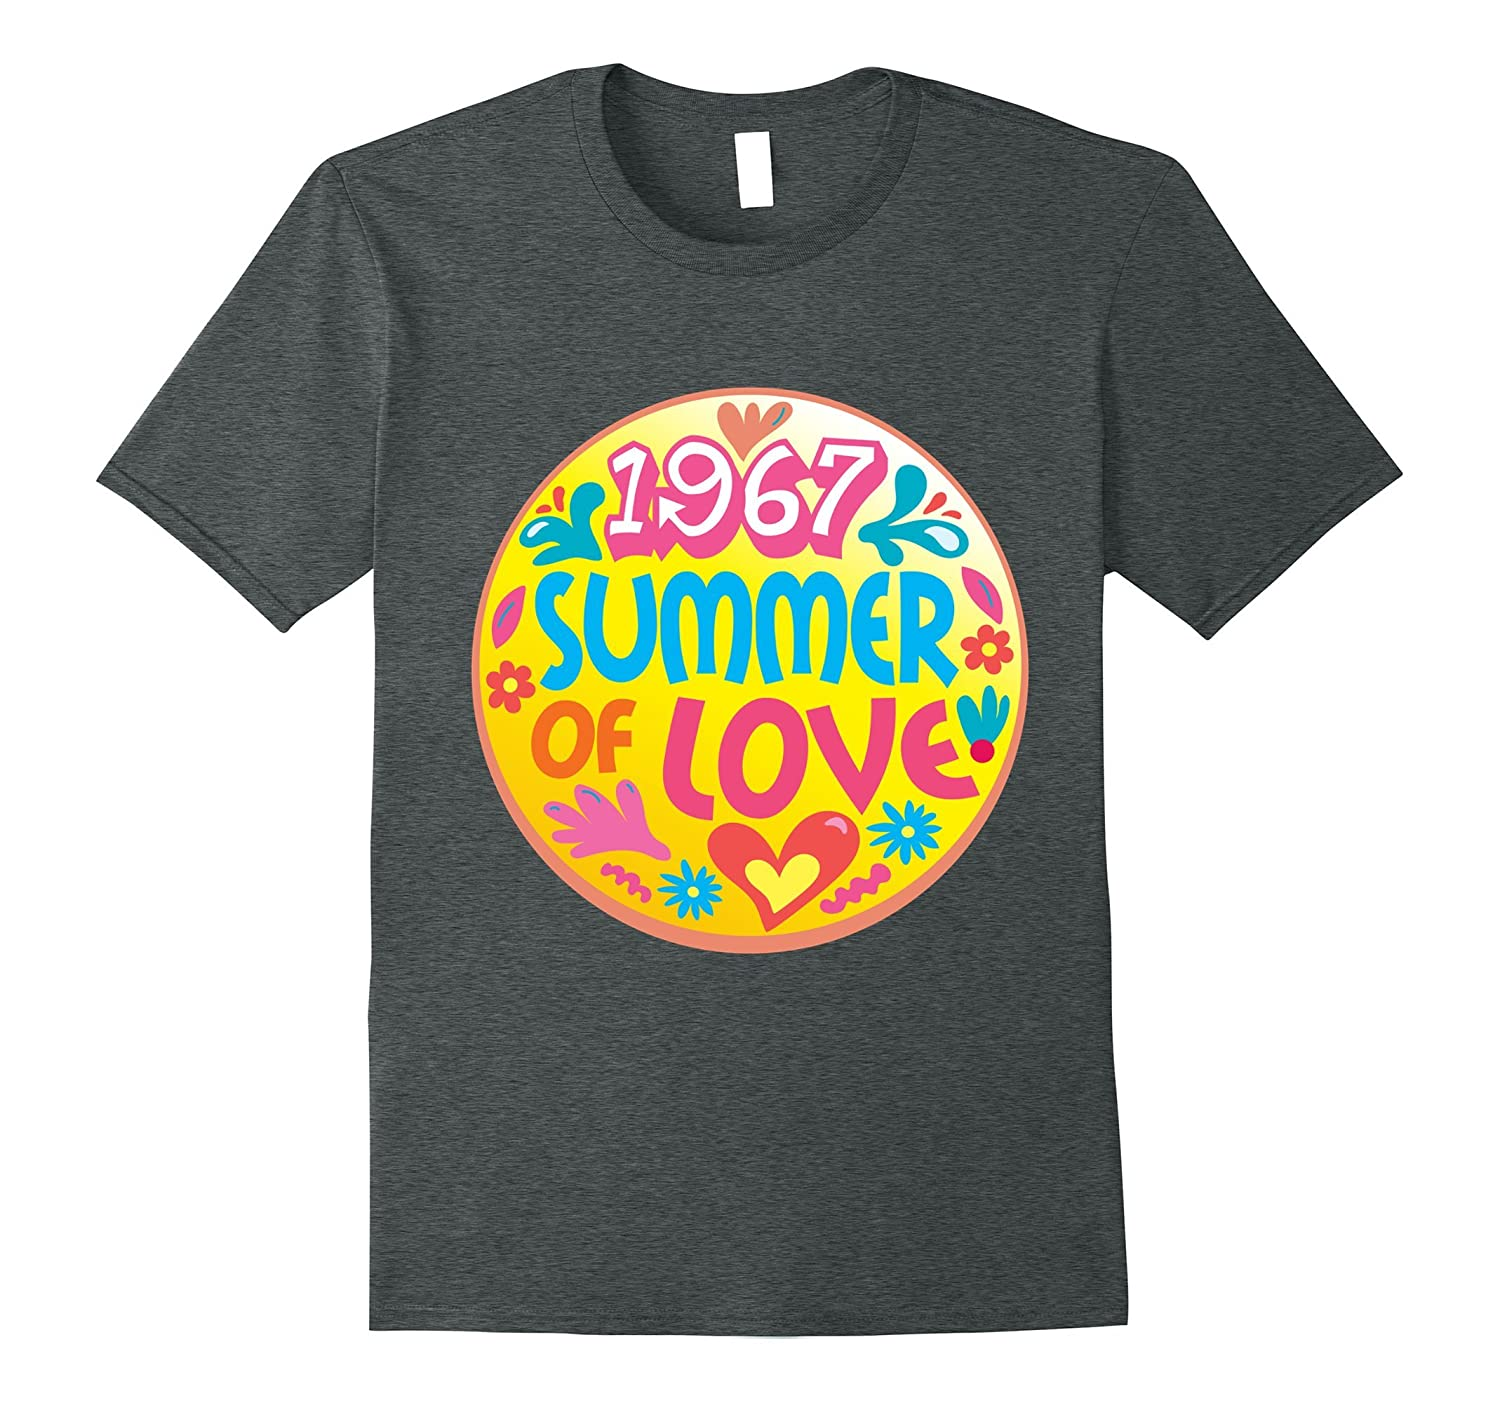 1967 Summer of Love T-shirt - Hippie Flower Child T-shirt-PL